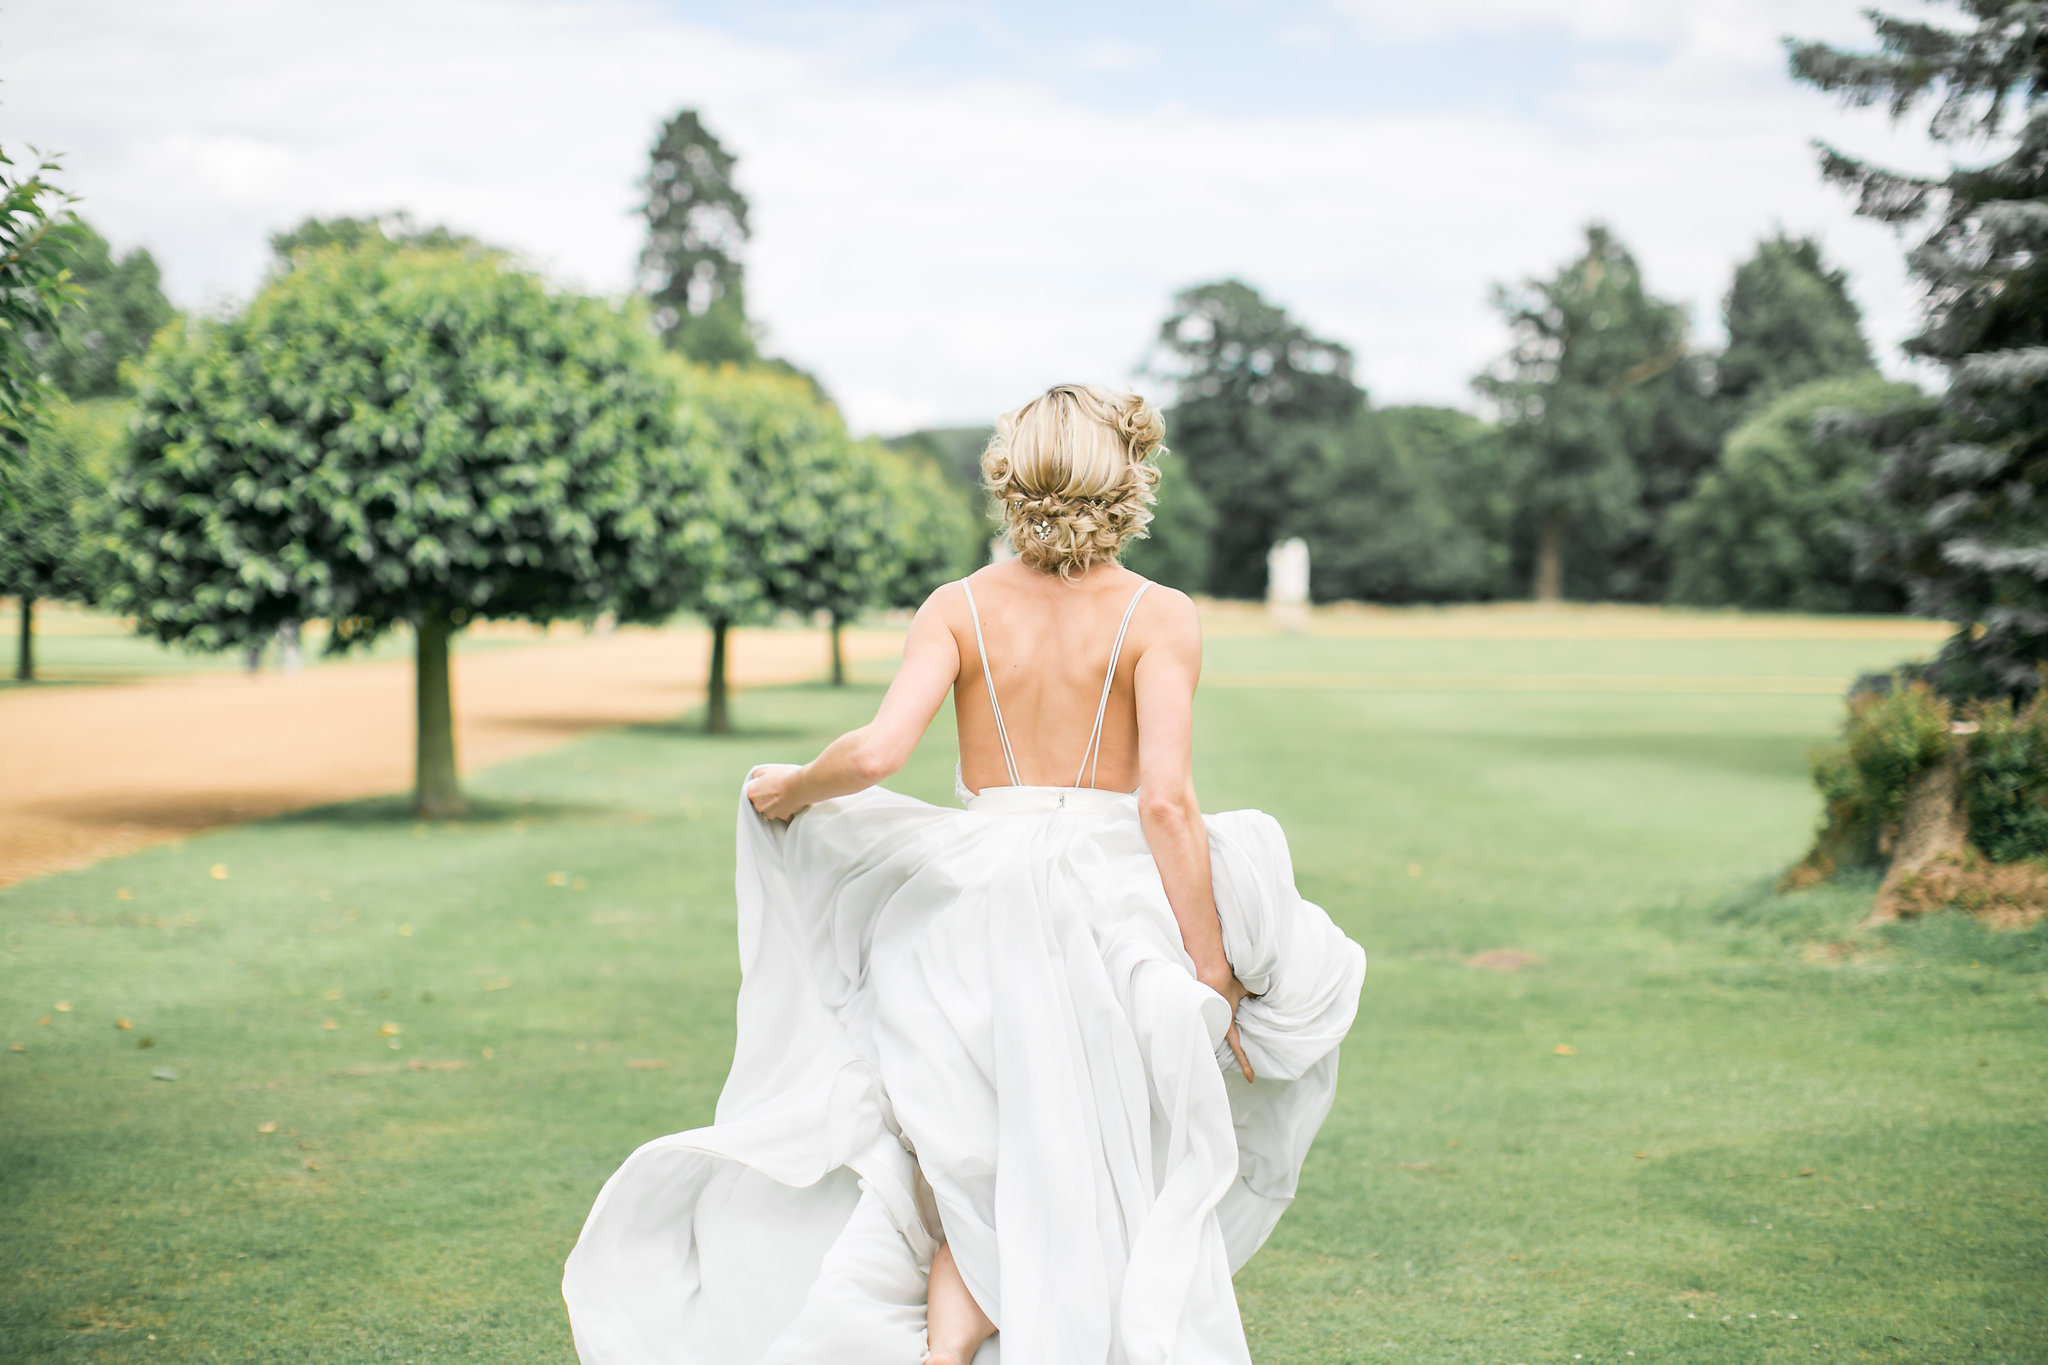 Philippa_sian_photography_wrest_park-139.jpg